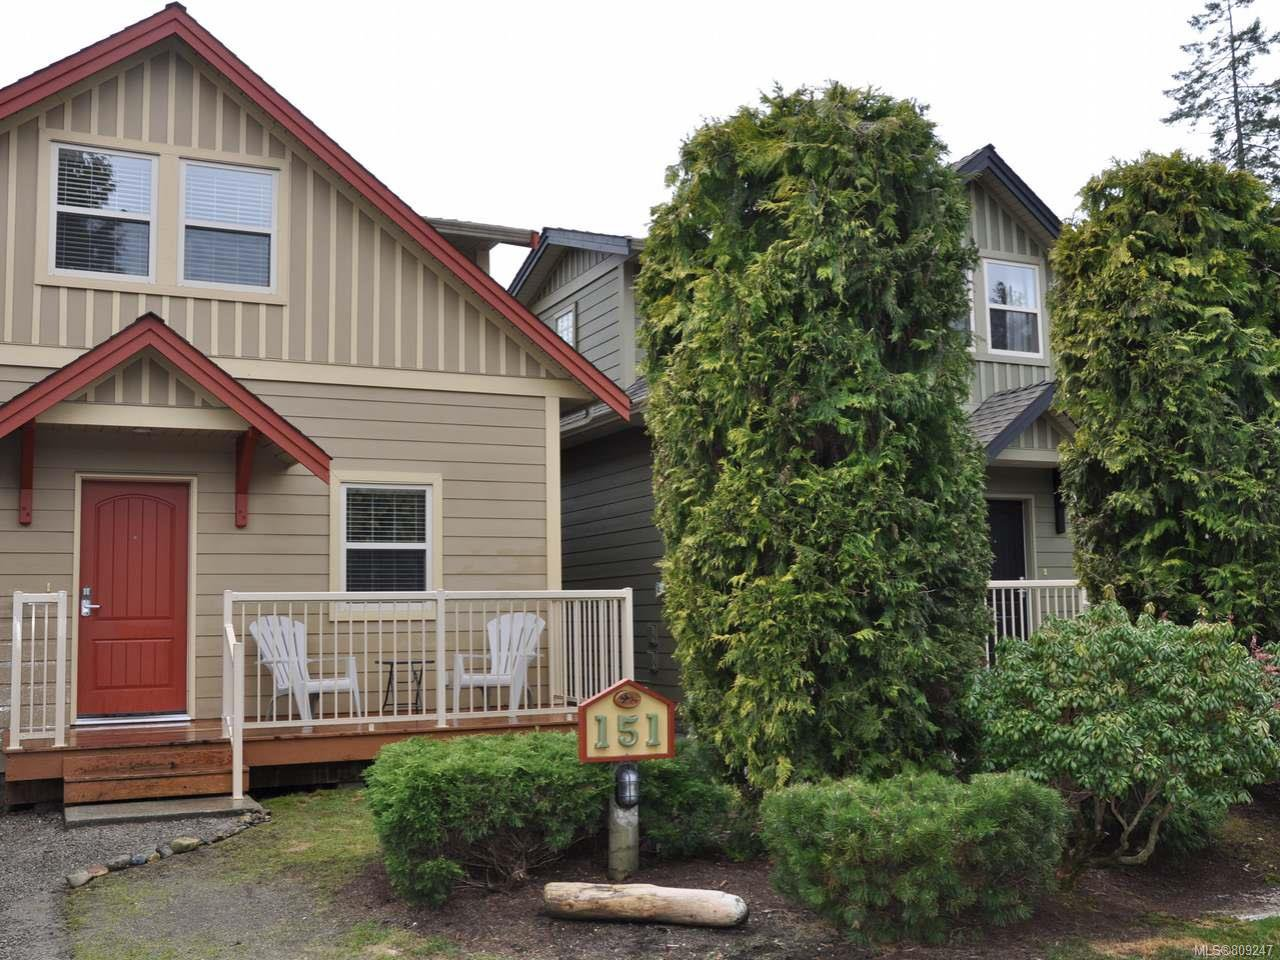 Main Photo: 151 1080 RESORT DRIVE in PARKSVILLE: PQ Parksville Row/Townhouse for sale (Parksville/Qualicum)  : MLS®# 809247